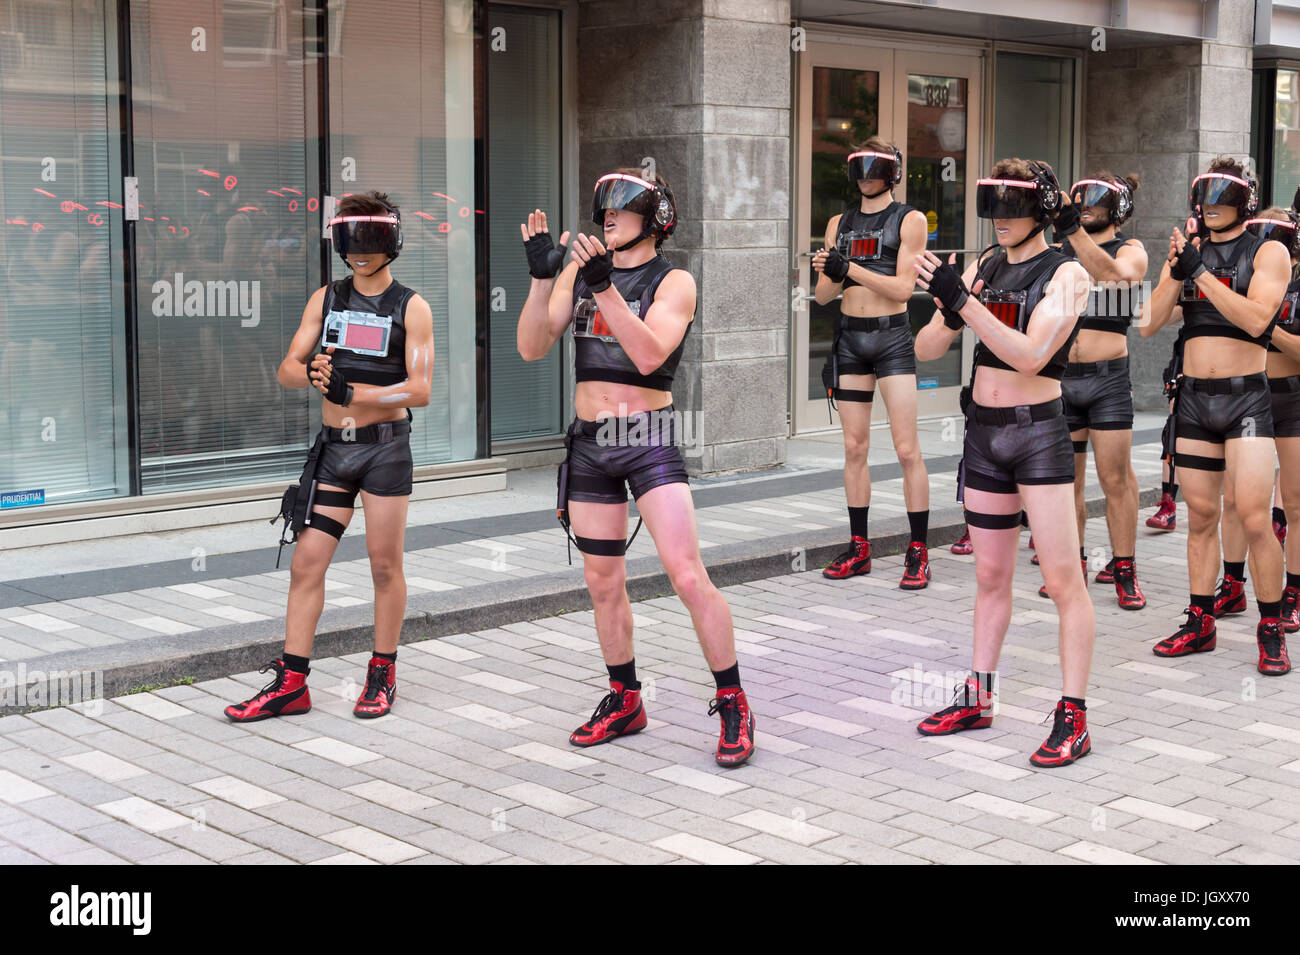 'Minutiens' Street performers with VR headsets during Montreal Circus Arts Festival 2017 - Stock Image